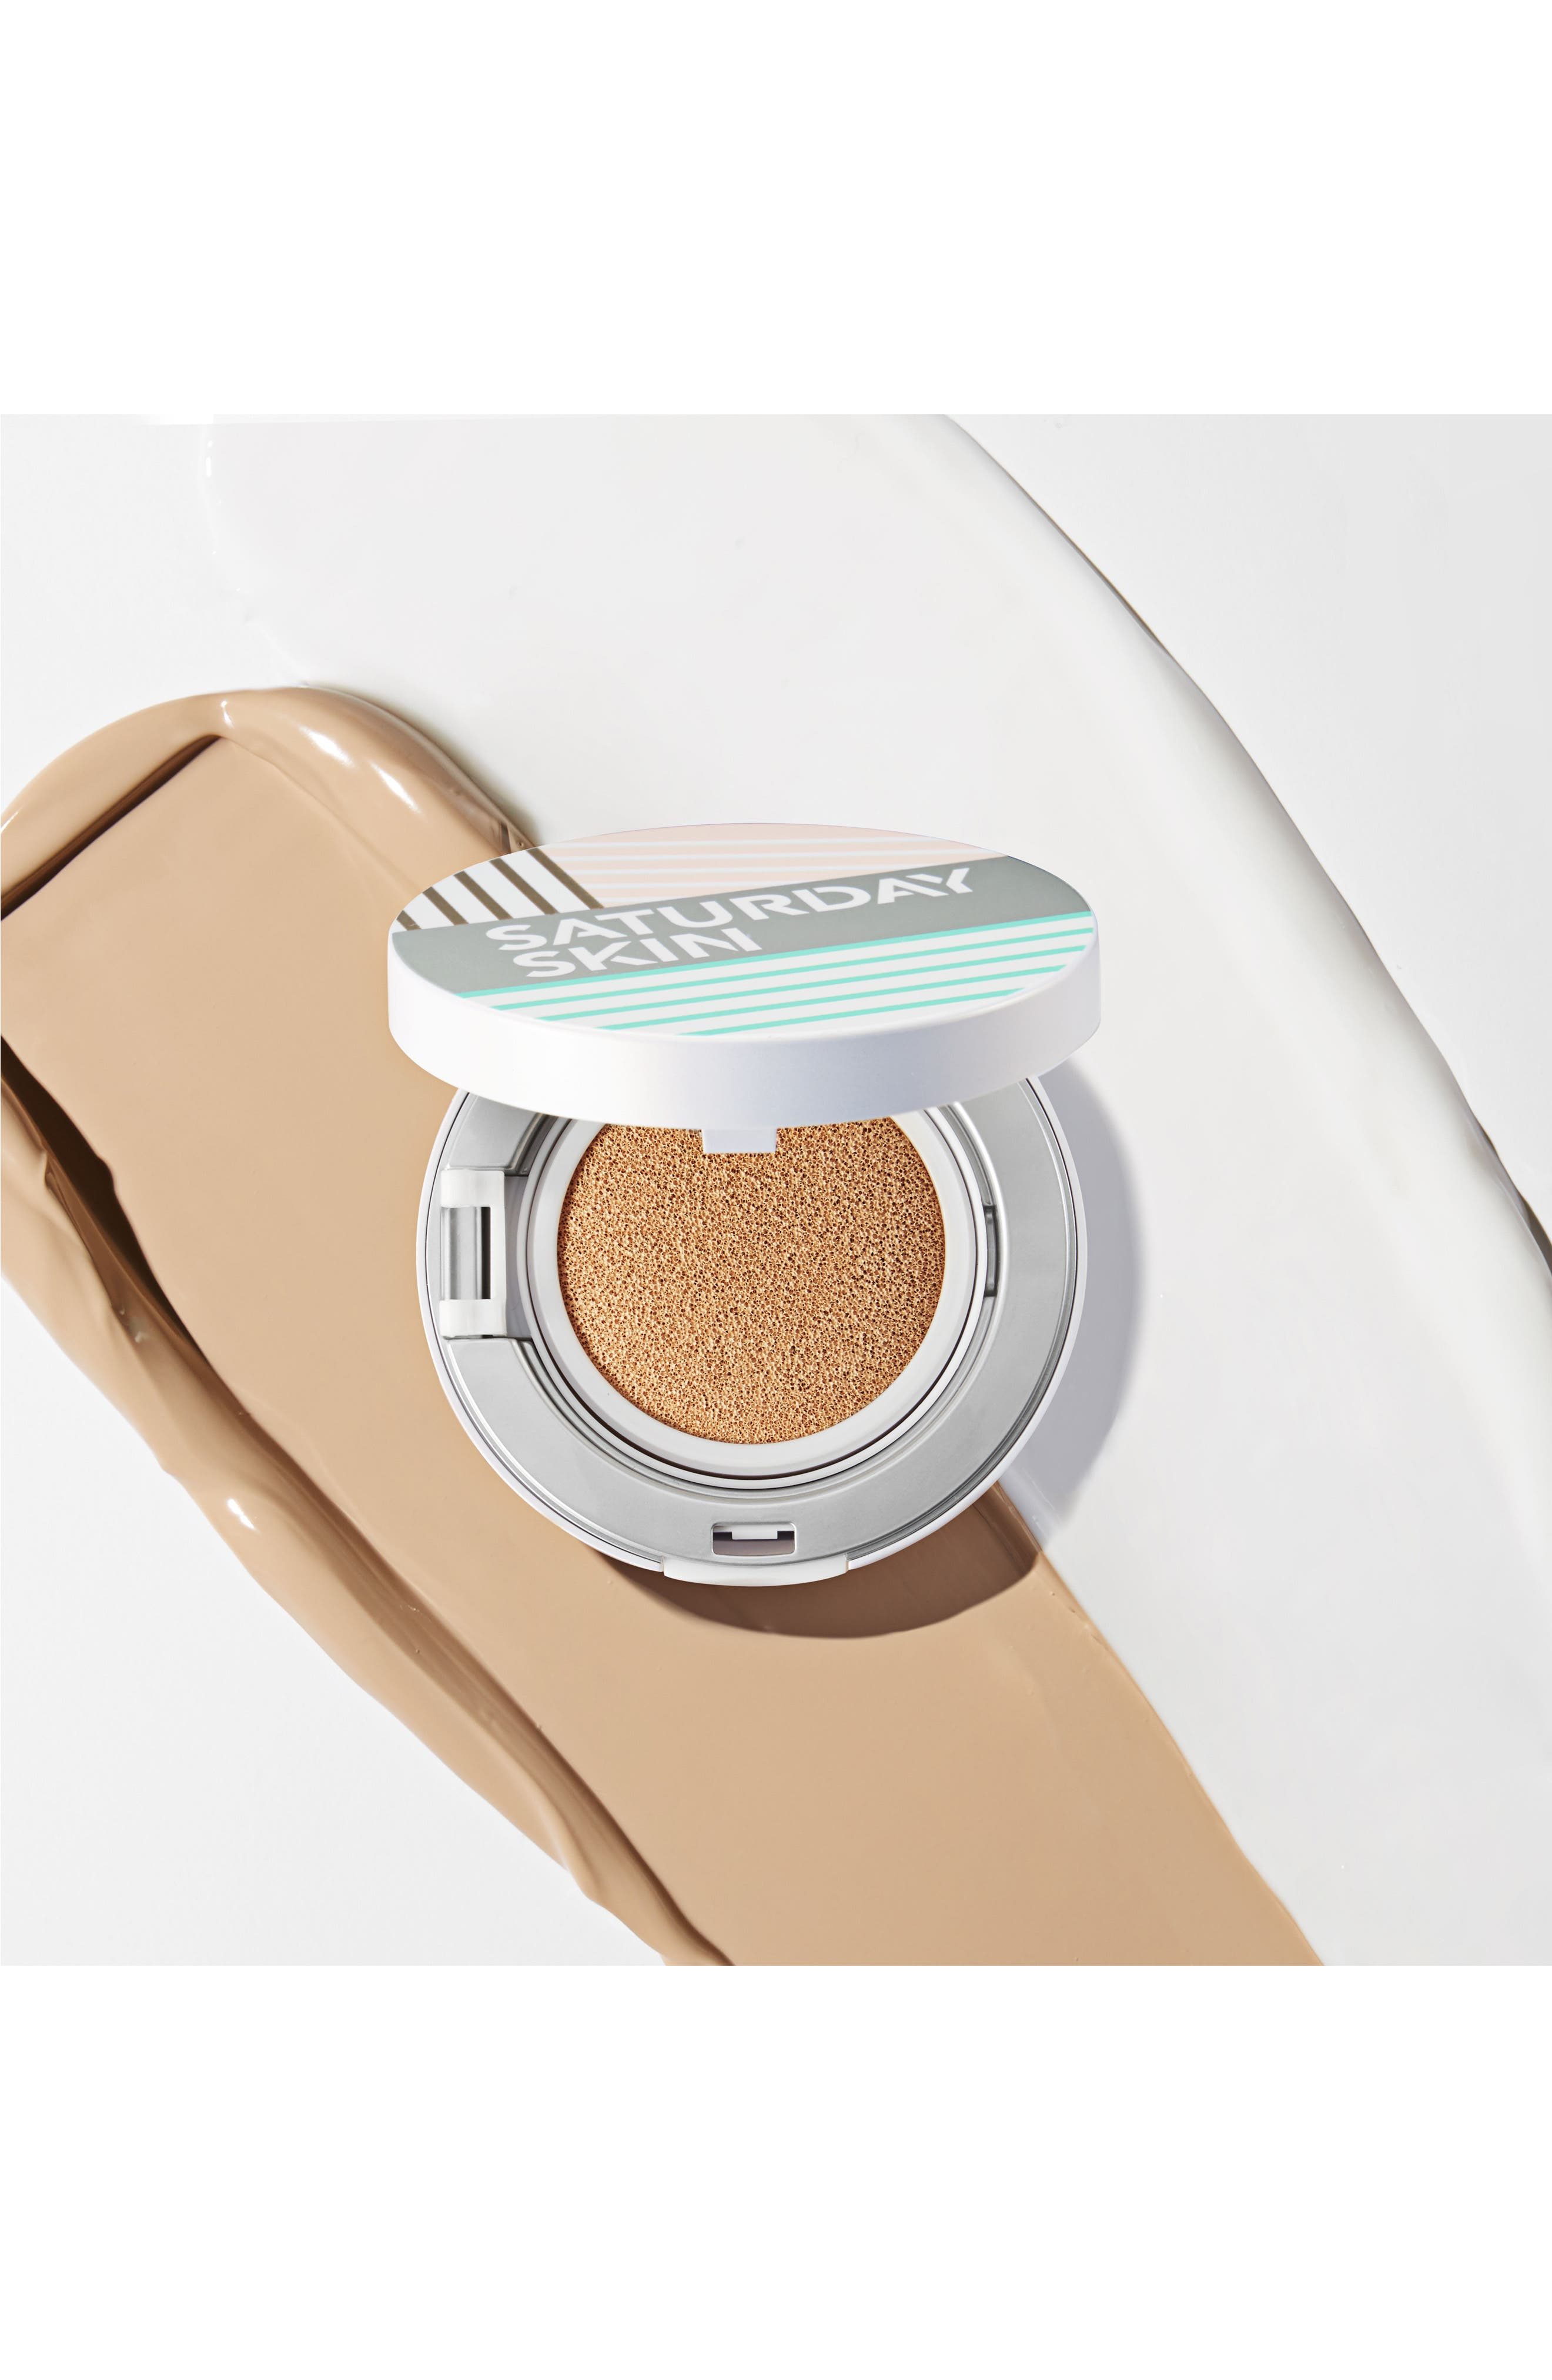 All Aglow Sunscreen Perfection Cushion Compact SPF 50,                             Alternate thumbnail 6, color,                             02 CHAMPAGNE